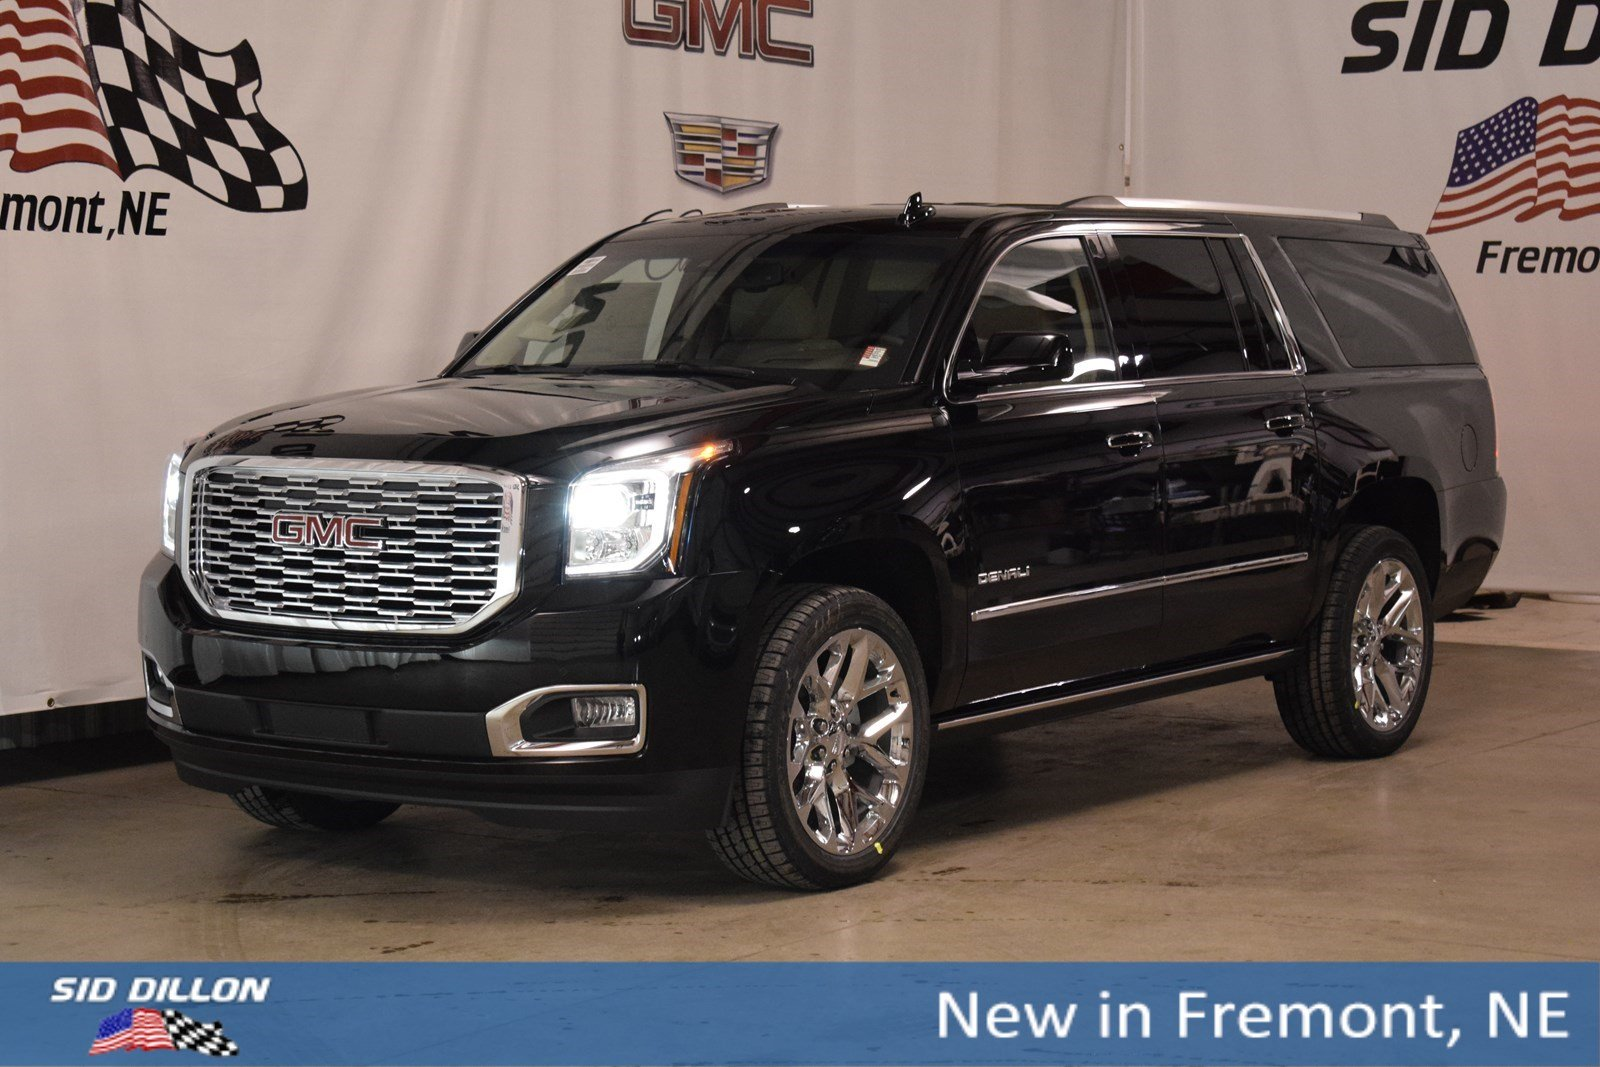 New 2019 Gmc Yukon Xl Denali Suv In Fremont 2g19225 Sid Dillon